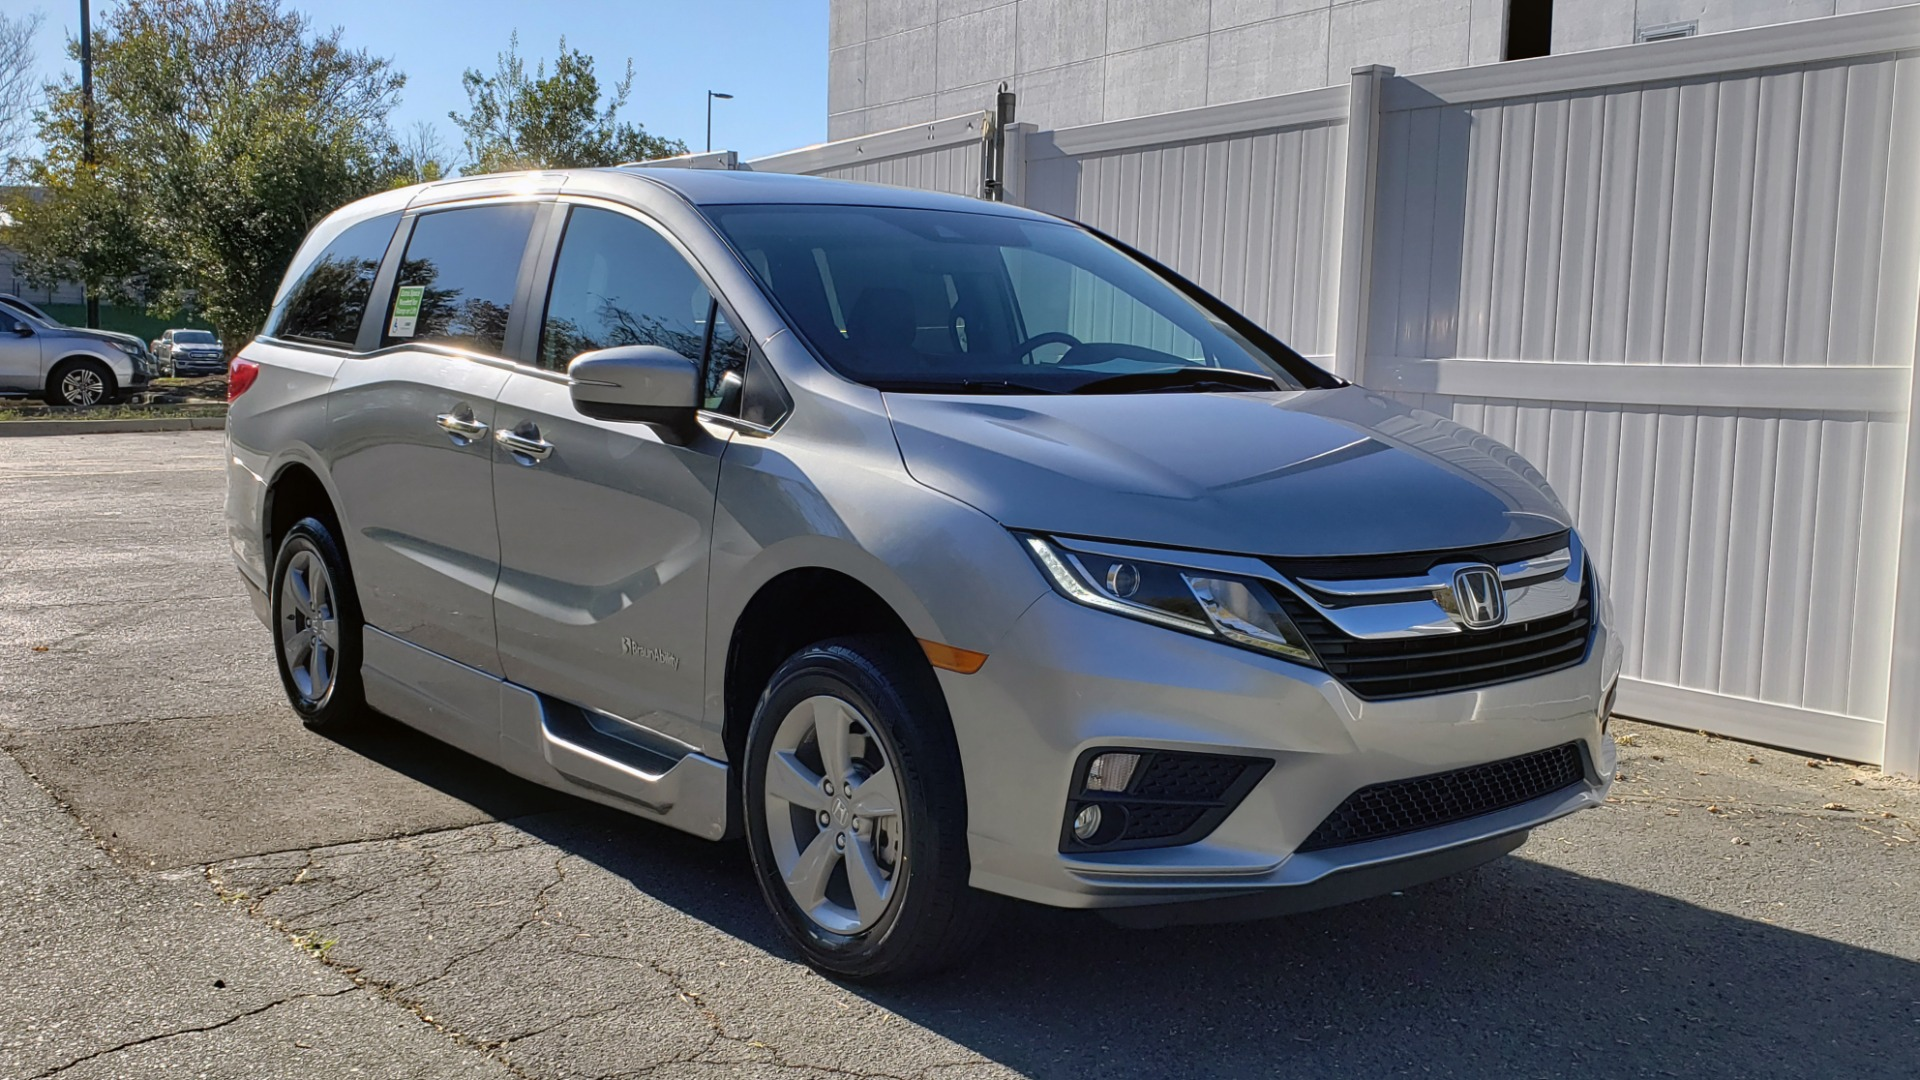 Used 2019 Honda ODYSSEY EX-L BRAUNABILITY / NAV / RES / LKA / BLUE-RAY / SUNROOF / REARVIEW for sale Sold at Formula Imports in Charlotte NC 28227 4